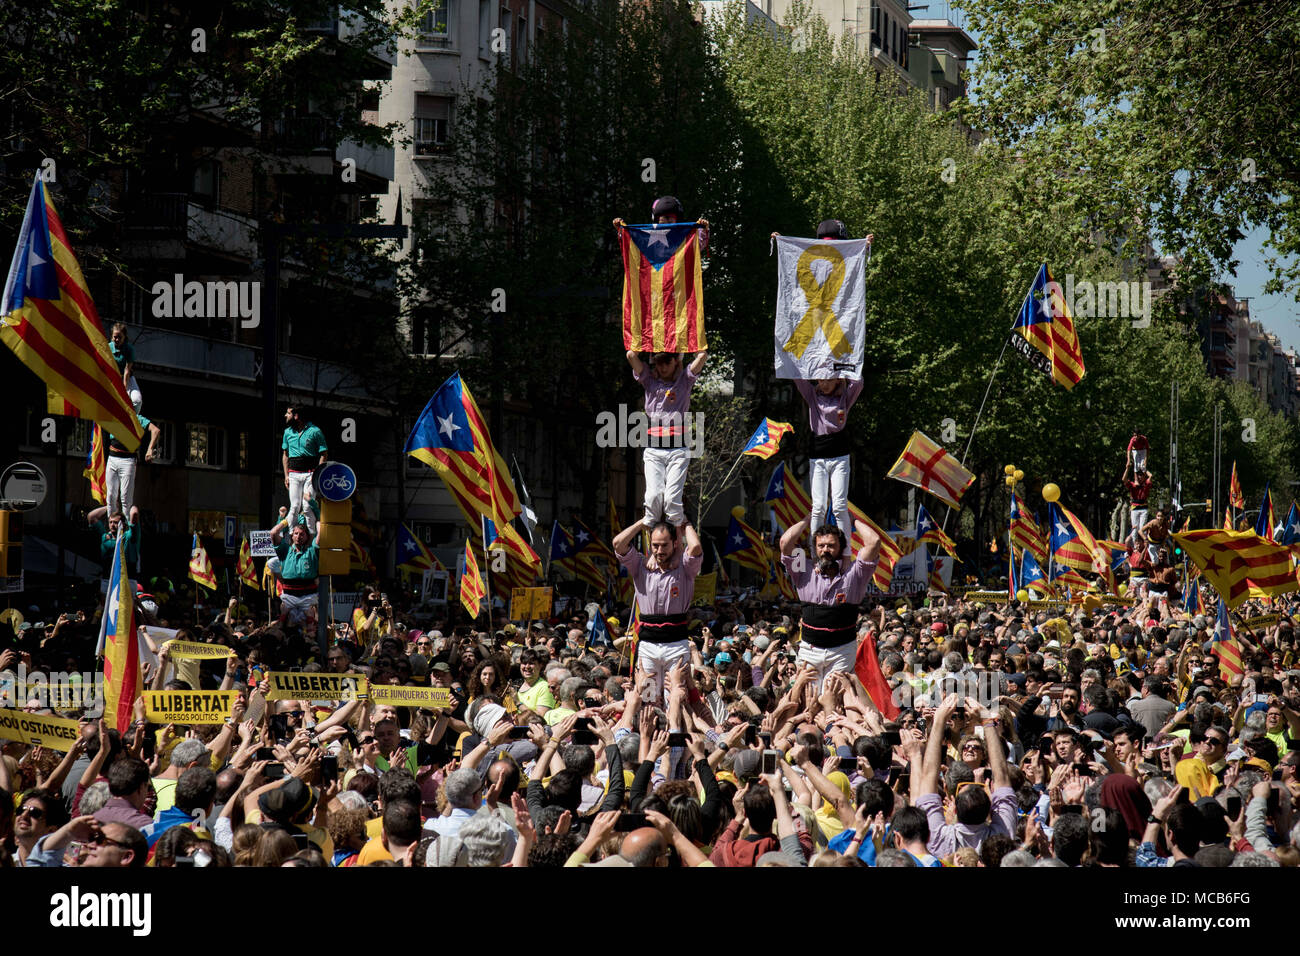 Castellers Form Human Towers Or Castells Among Hundreds Of Thousands  Pro-Independence Supporters Marching By The Streets Of Barcelona Demanding  The Release